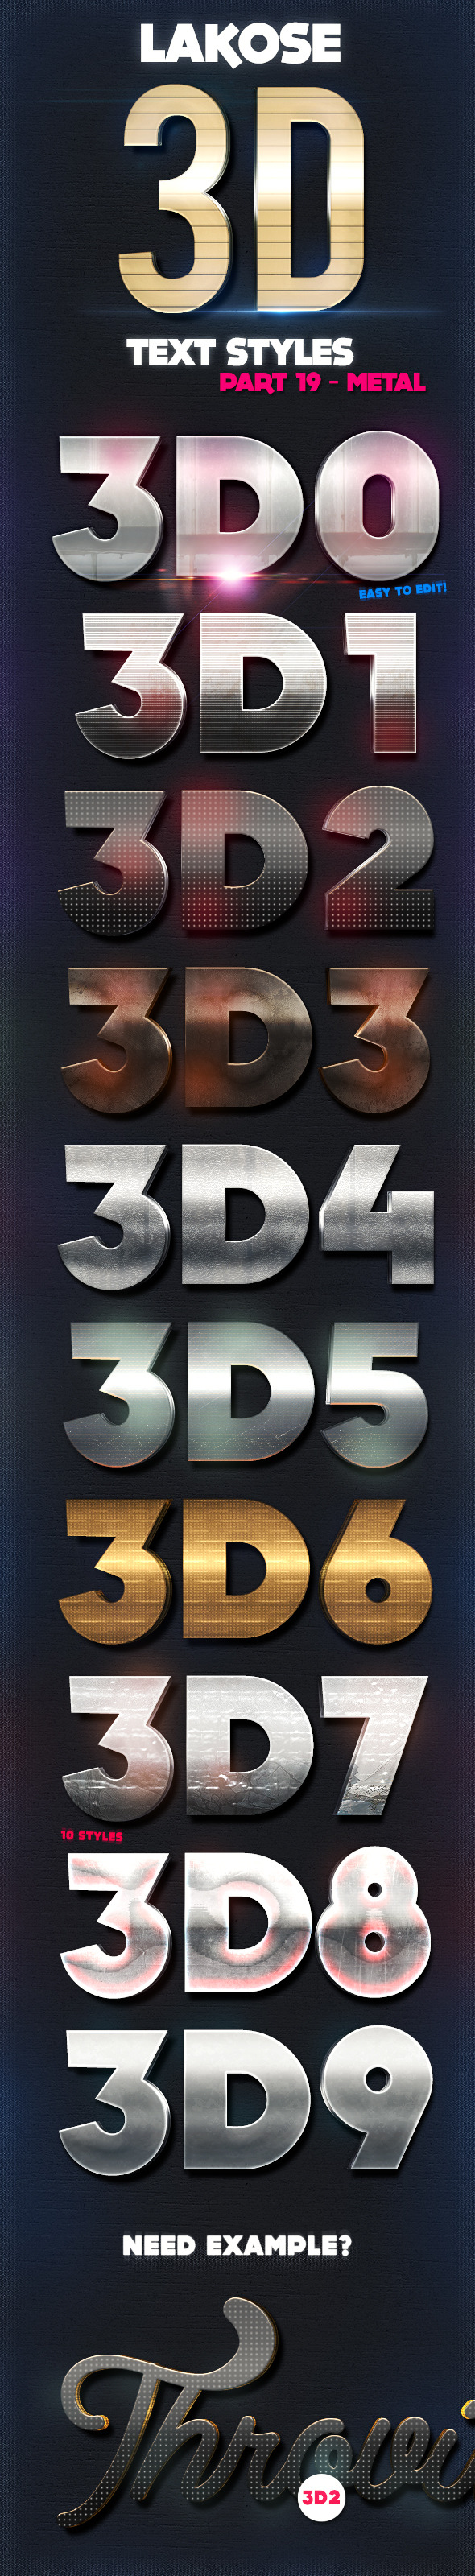 GraphicRiver Lakose 3D Text Styles Part 19 9950537